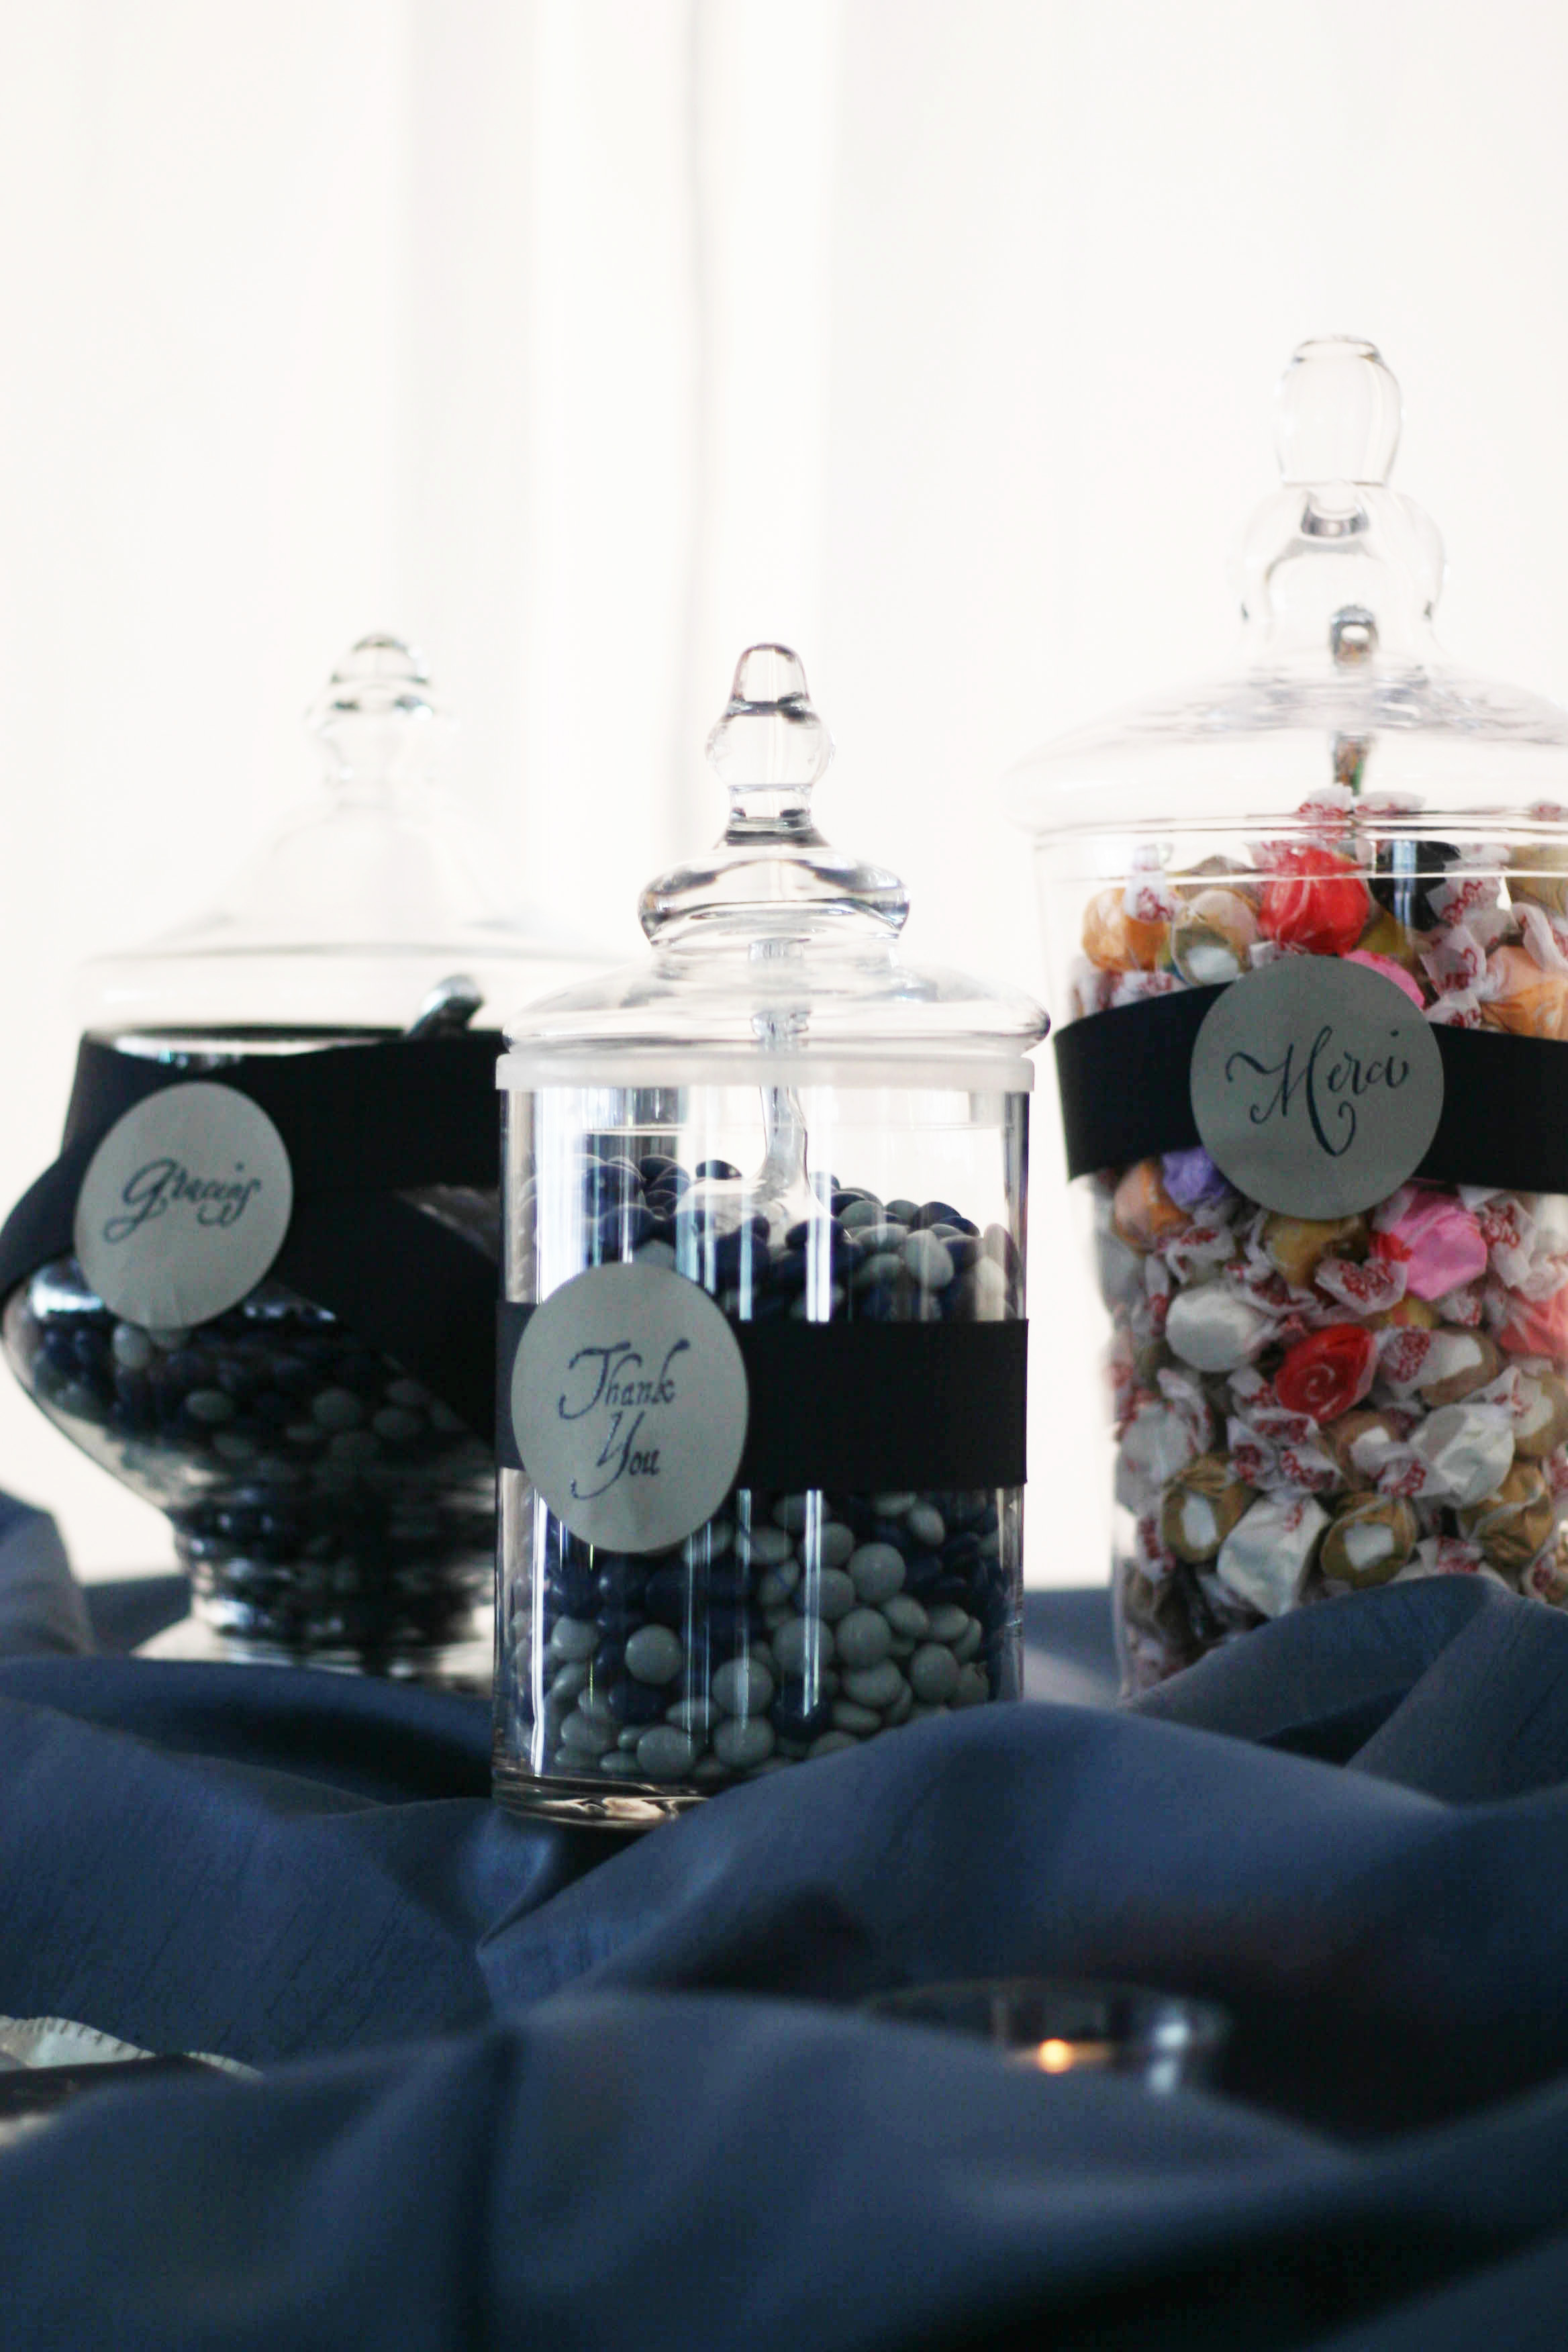 Cakes, blue, cake, Dessert, Candy, Jars, Apothecary